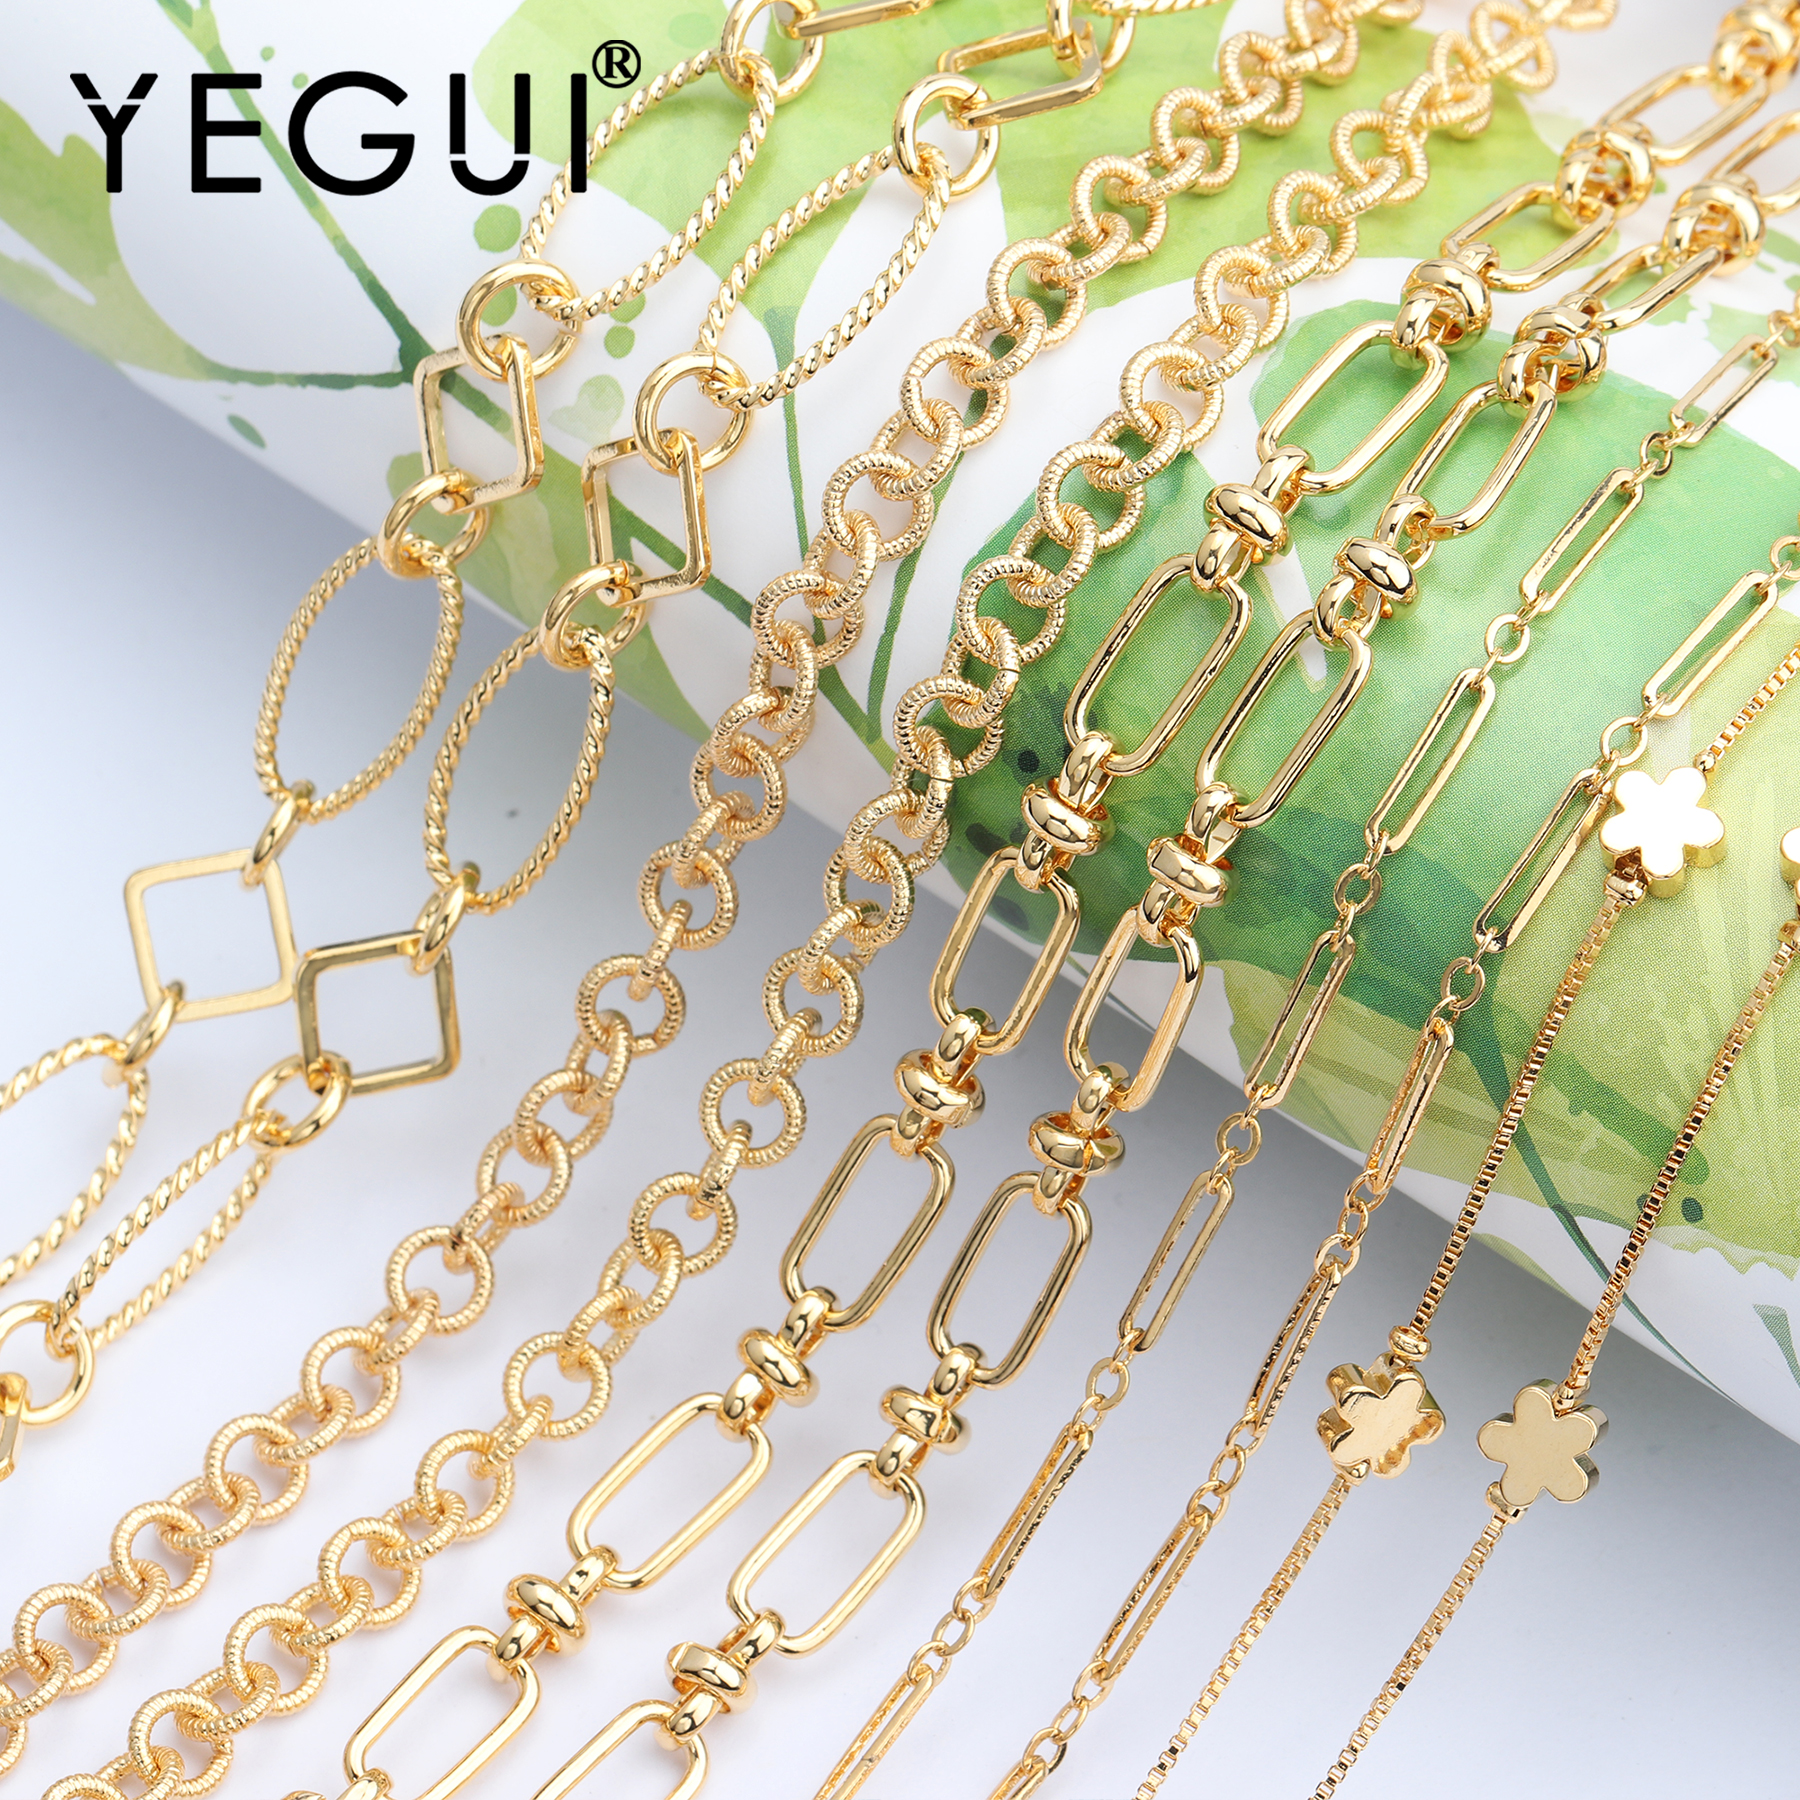 YEGUI C54,18k Gold Plated,jewelry Accessories,goldon Chain,jewelry Making,hand Made,jewelry Findings,diy Chain Necklace,1m/lot